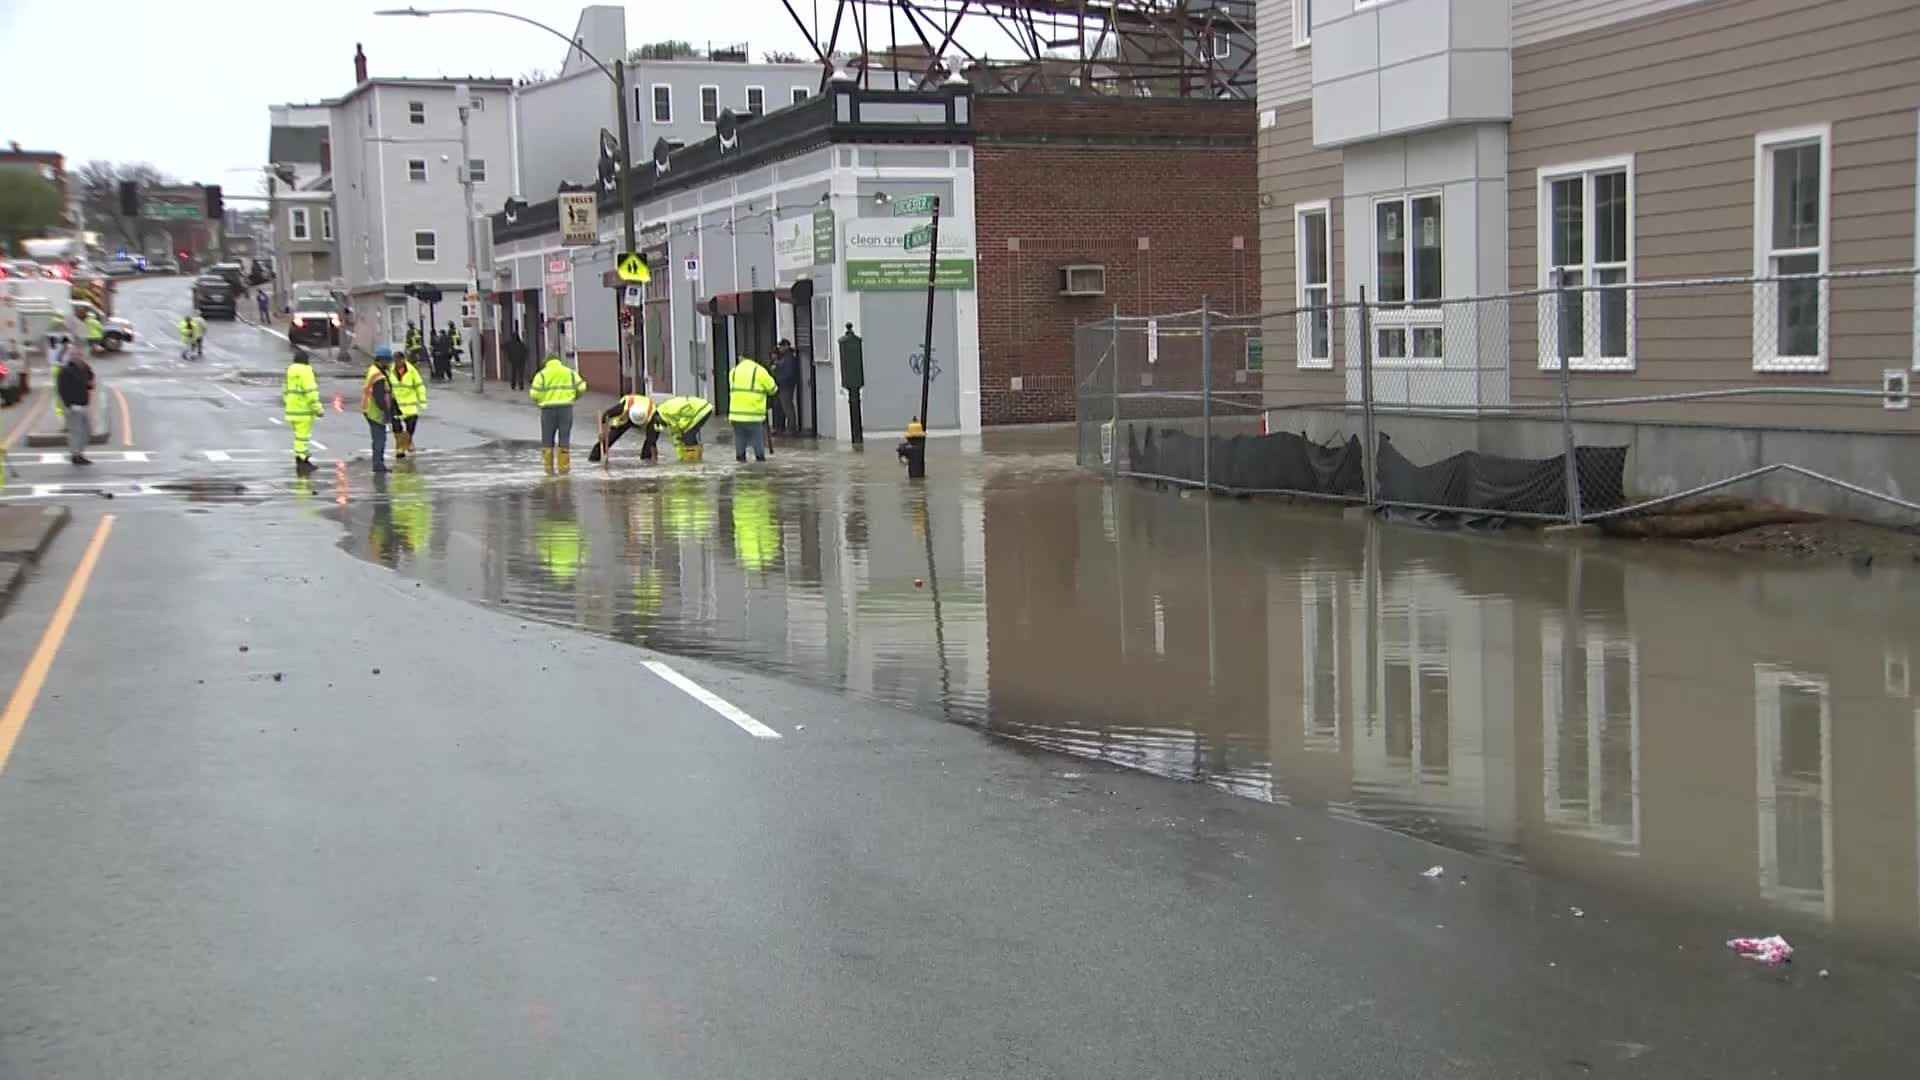 Water main leak sends water spewing into South Boston streets